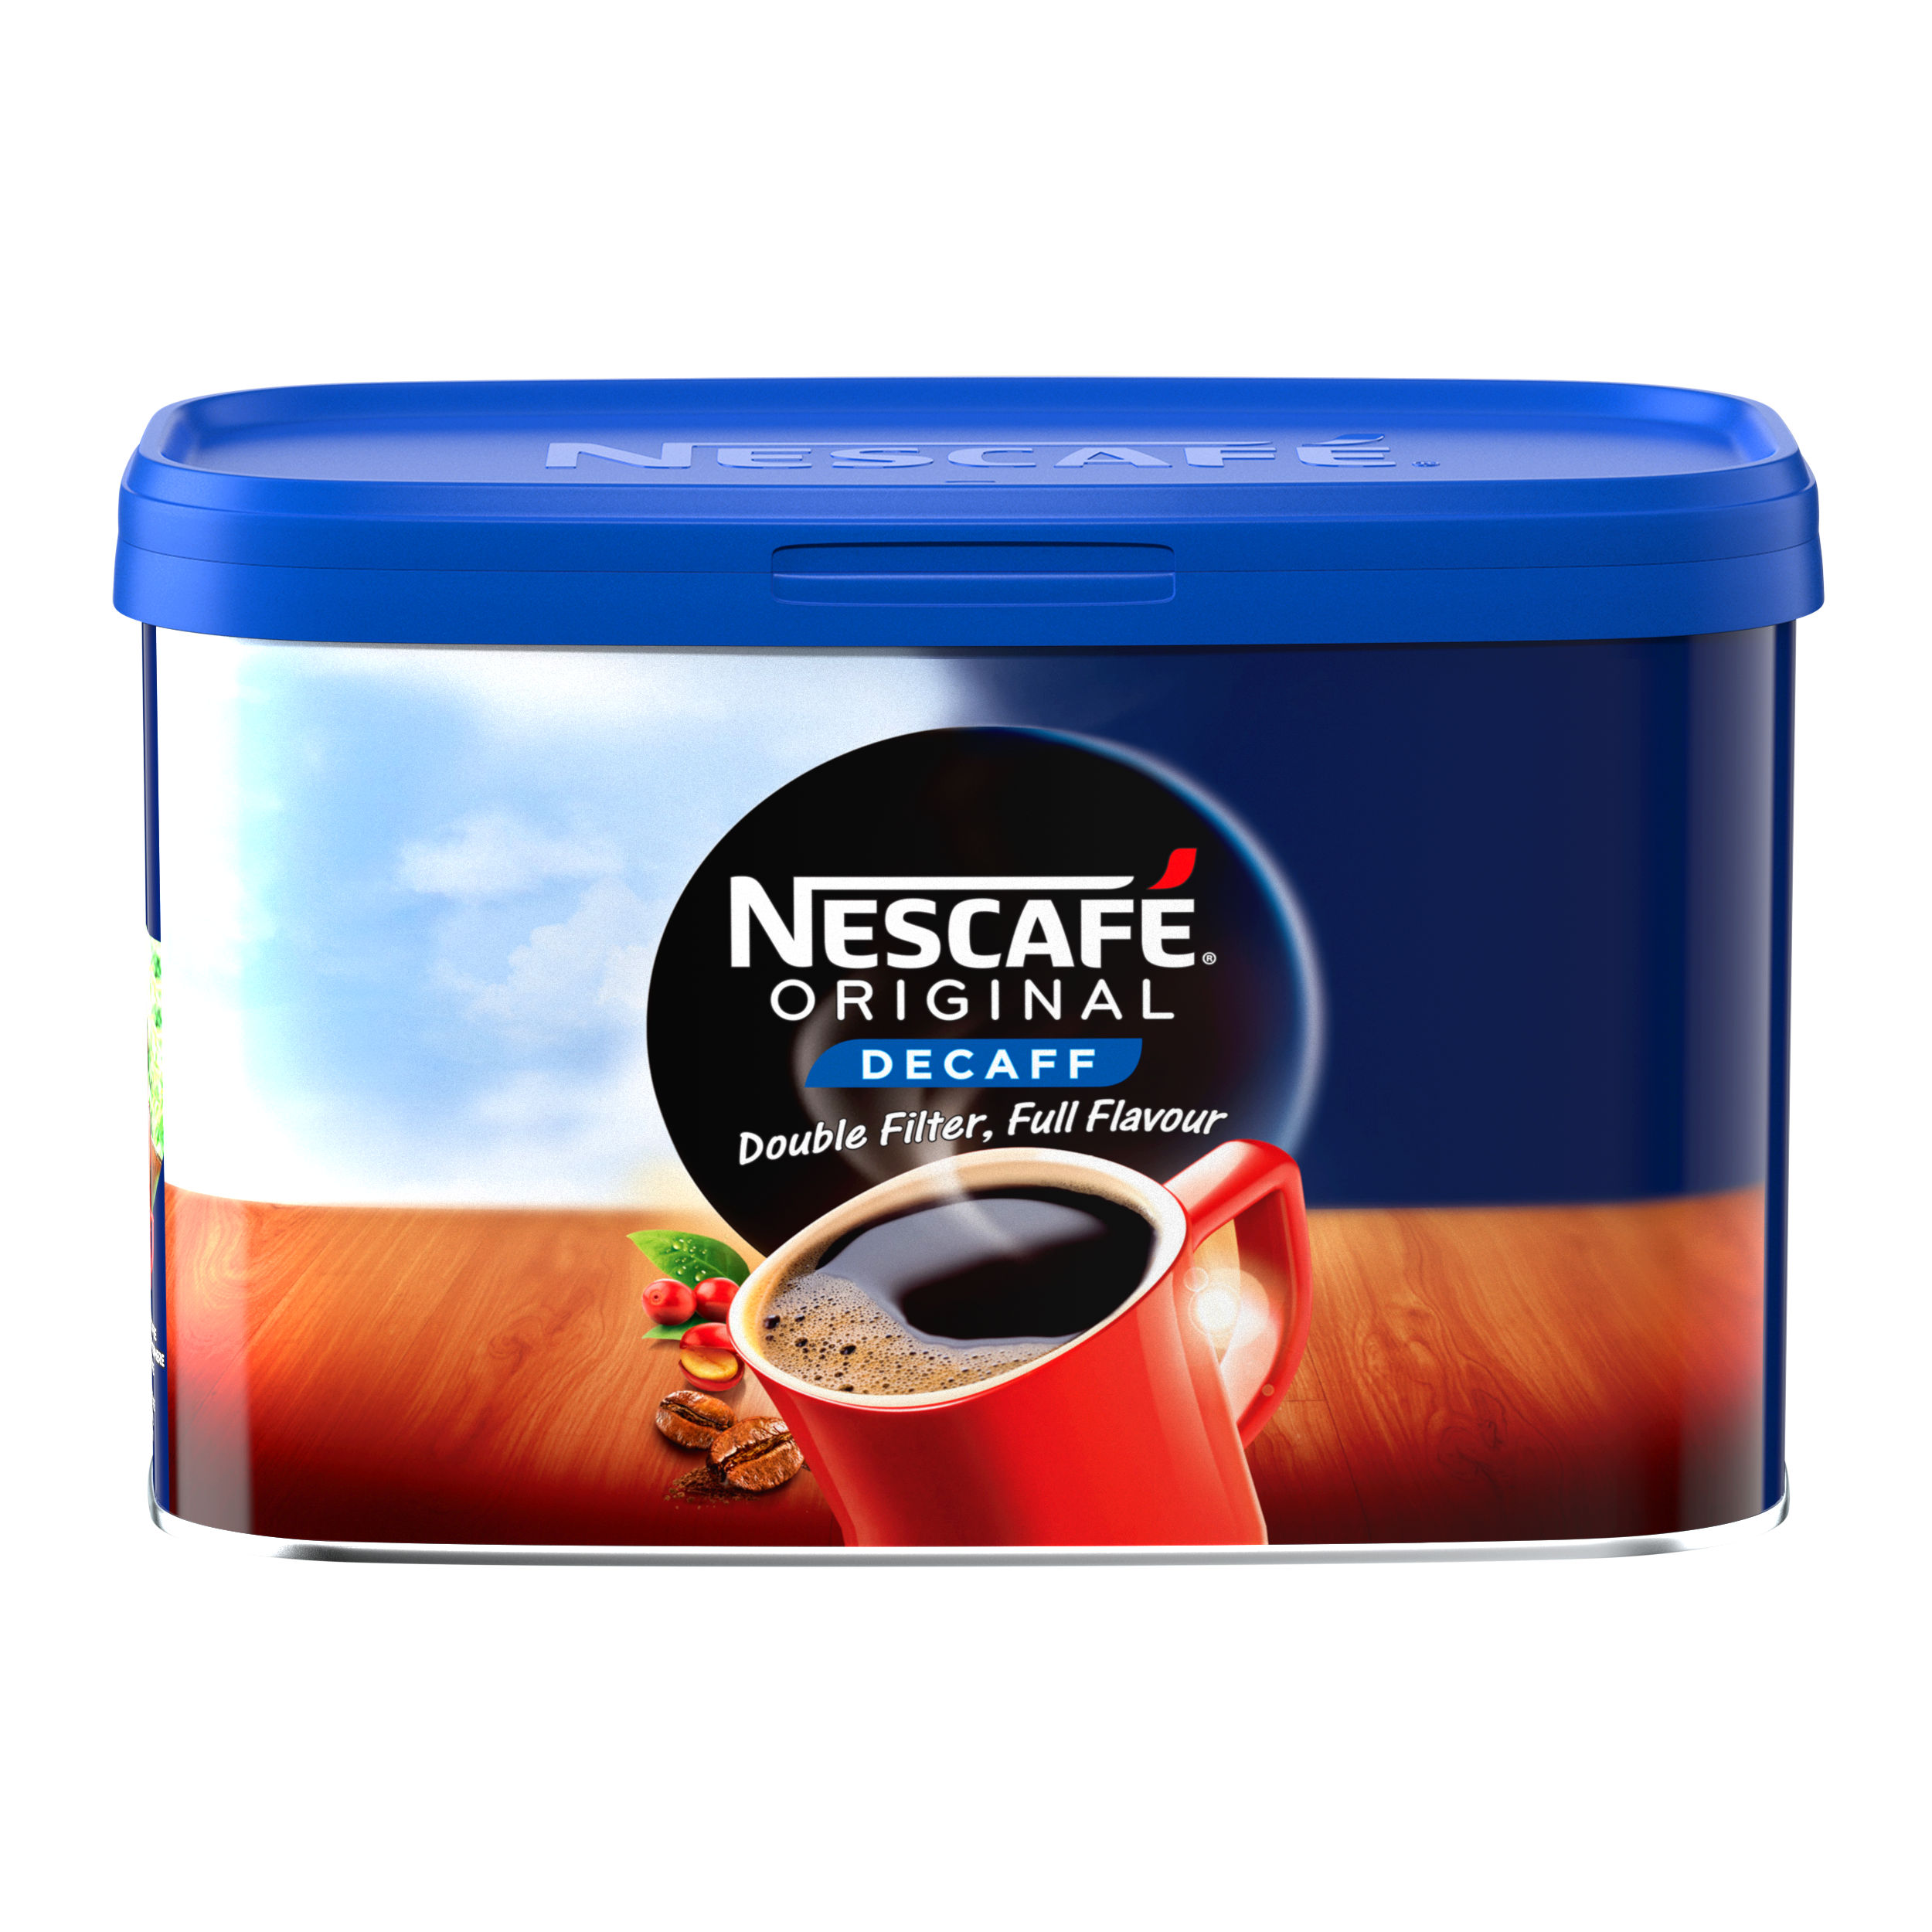 Nescafe Instant Arabica Coffee Nescafe Decaffeinated Instant Coffee 500g 12315569 Uoe